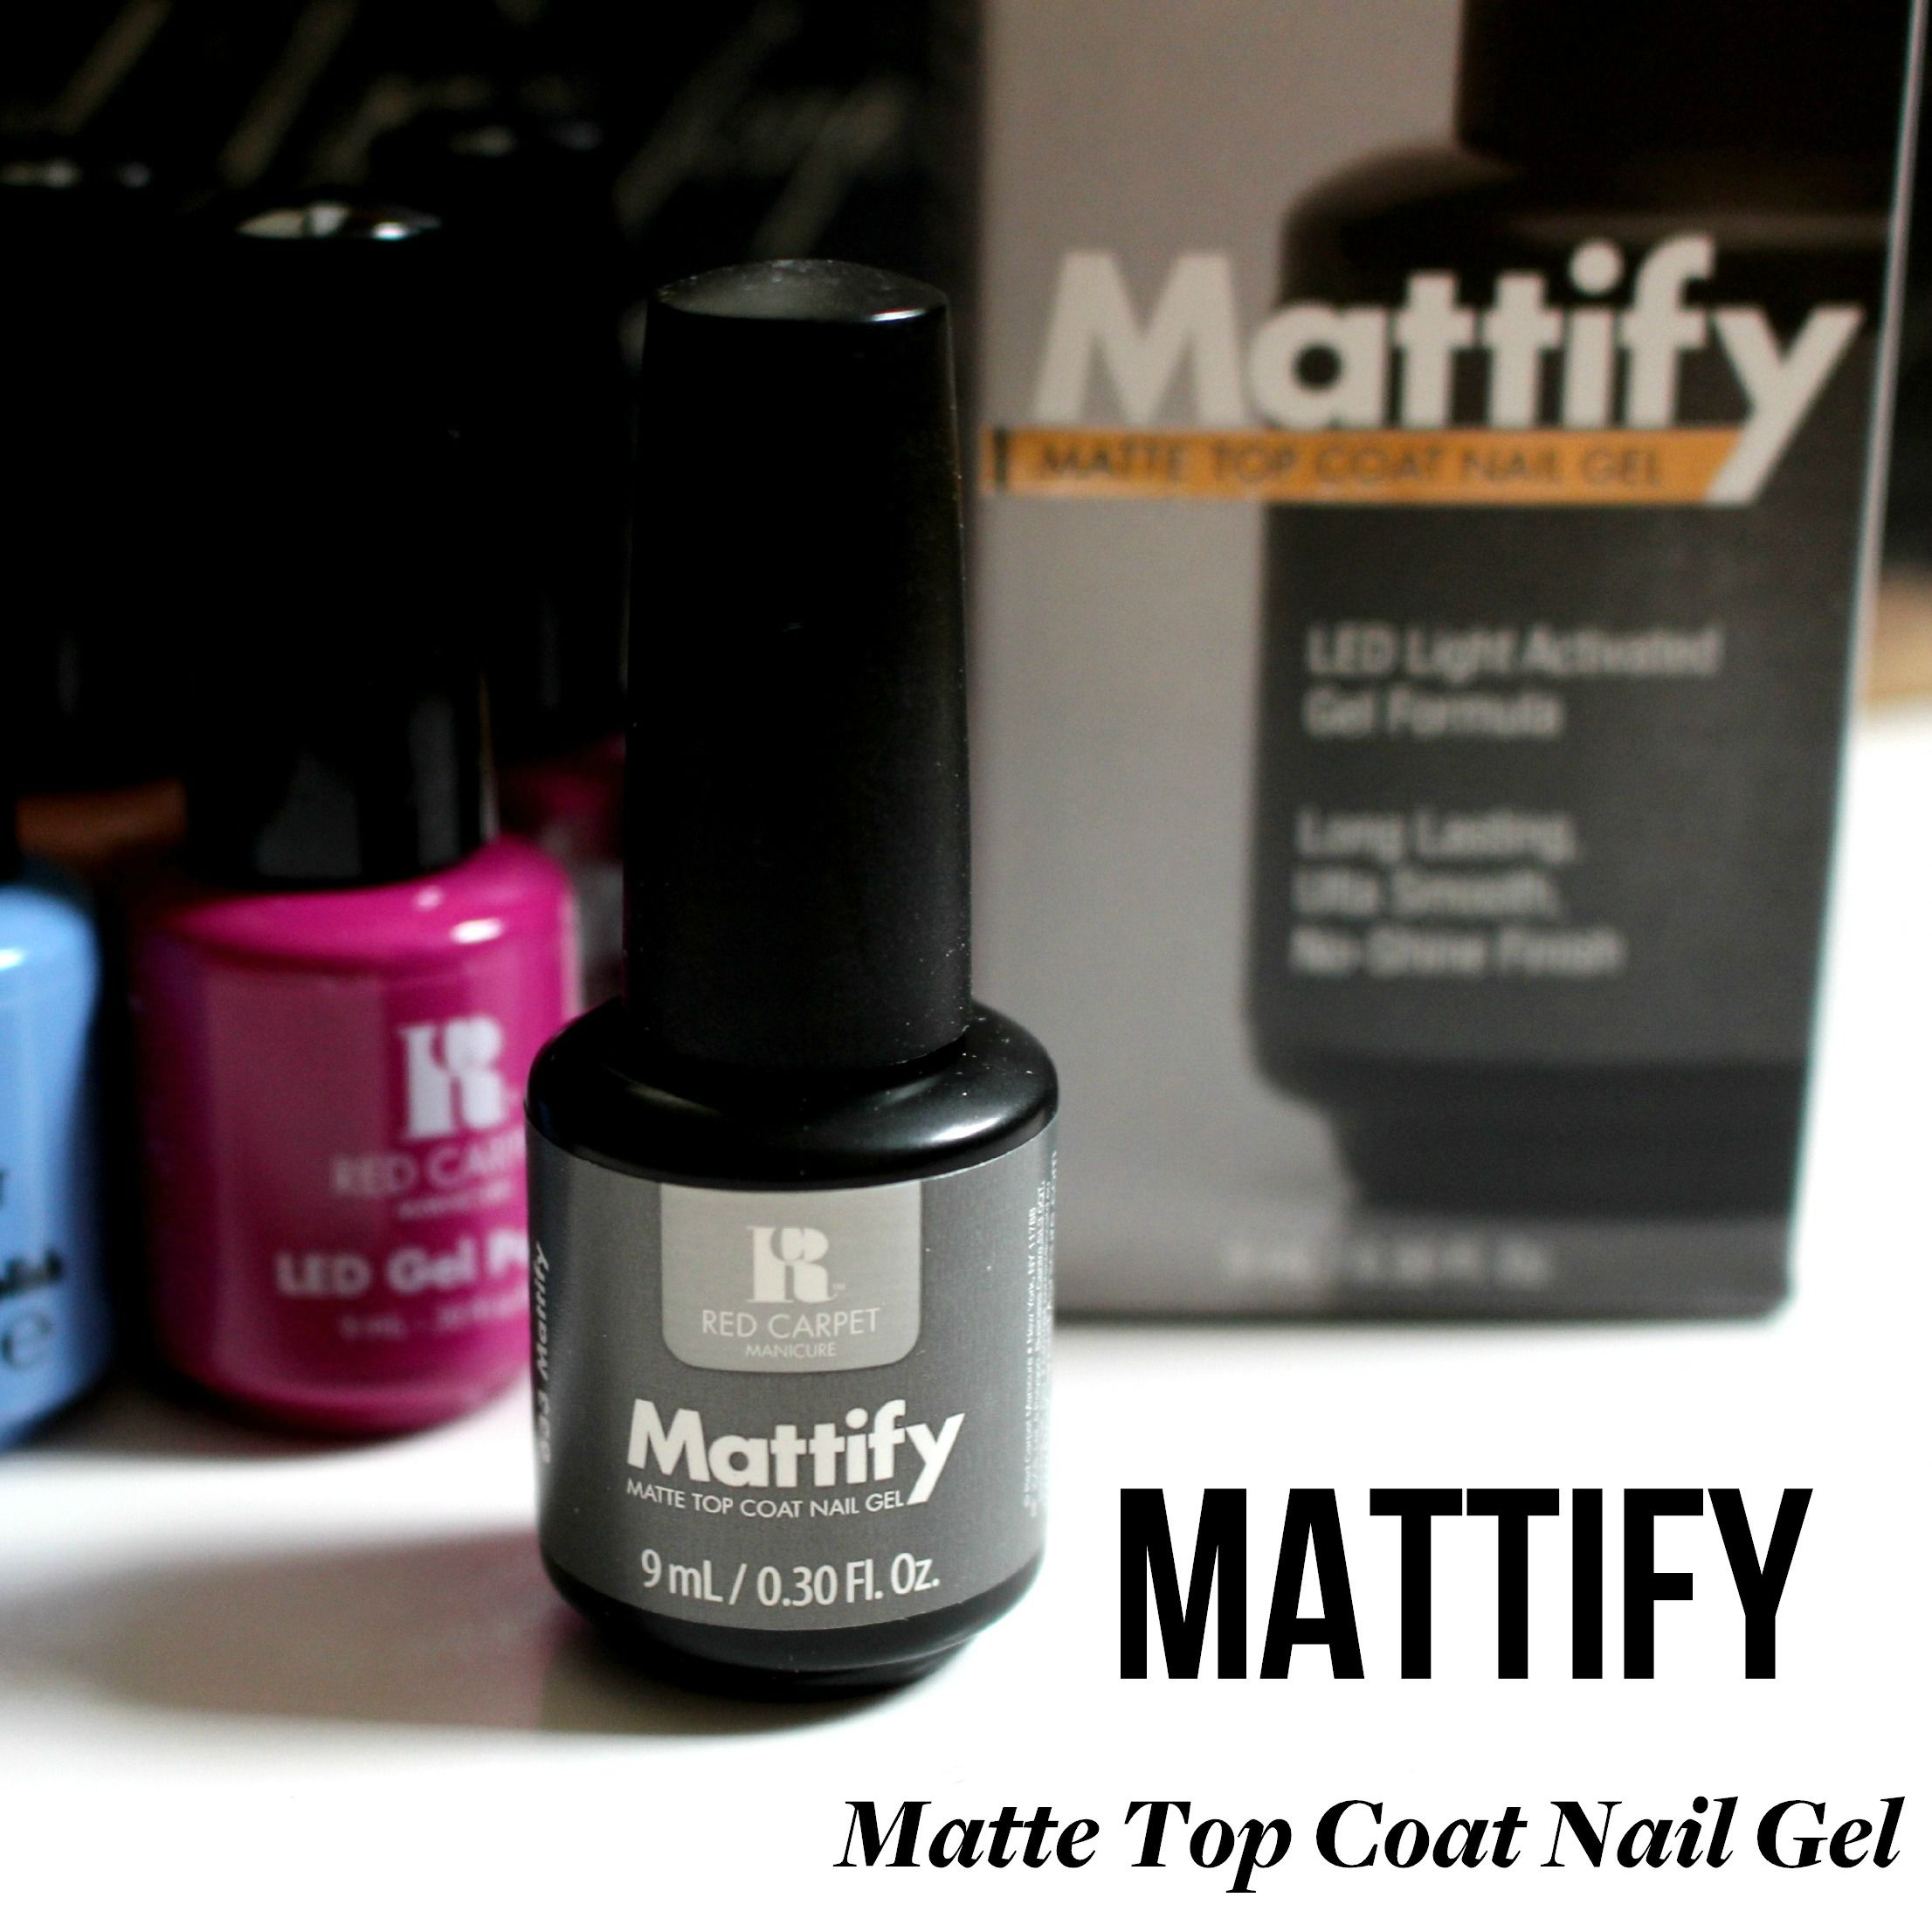 Our Mattify Matte Top Coat Nail Gel is the perfect way to add a ...